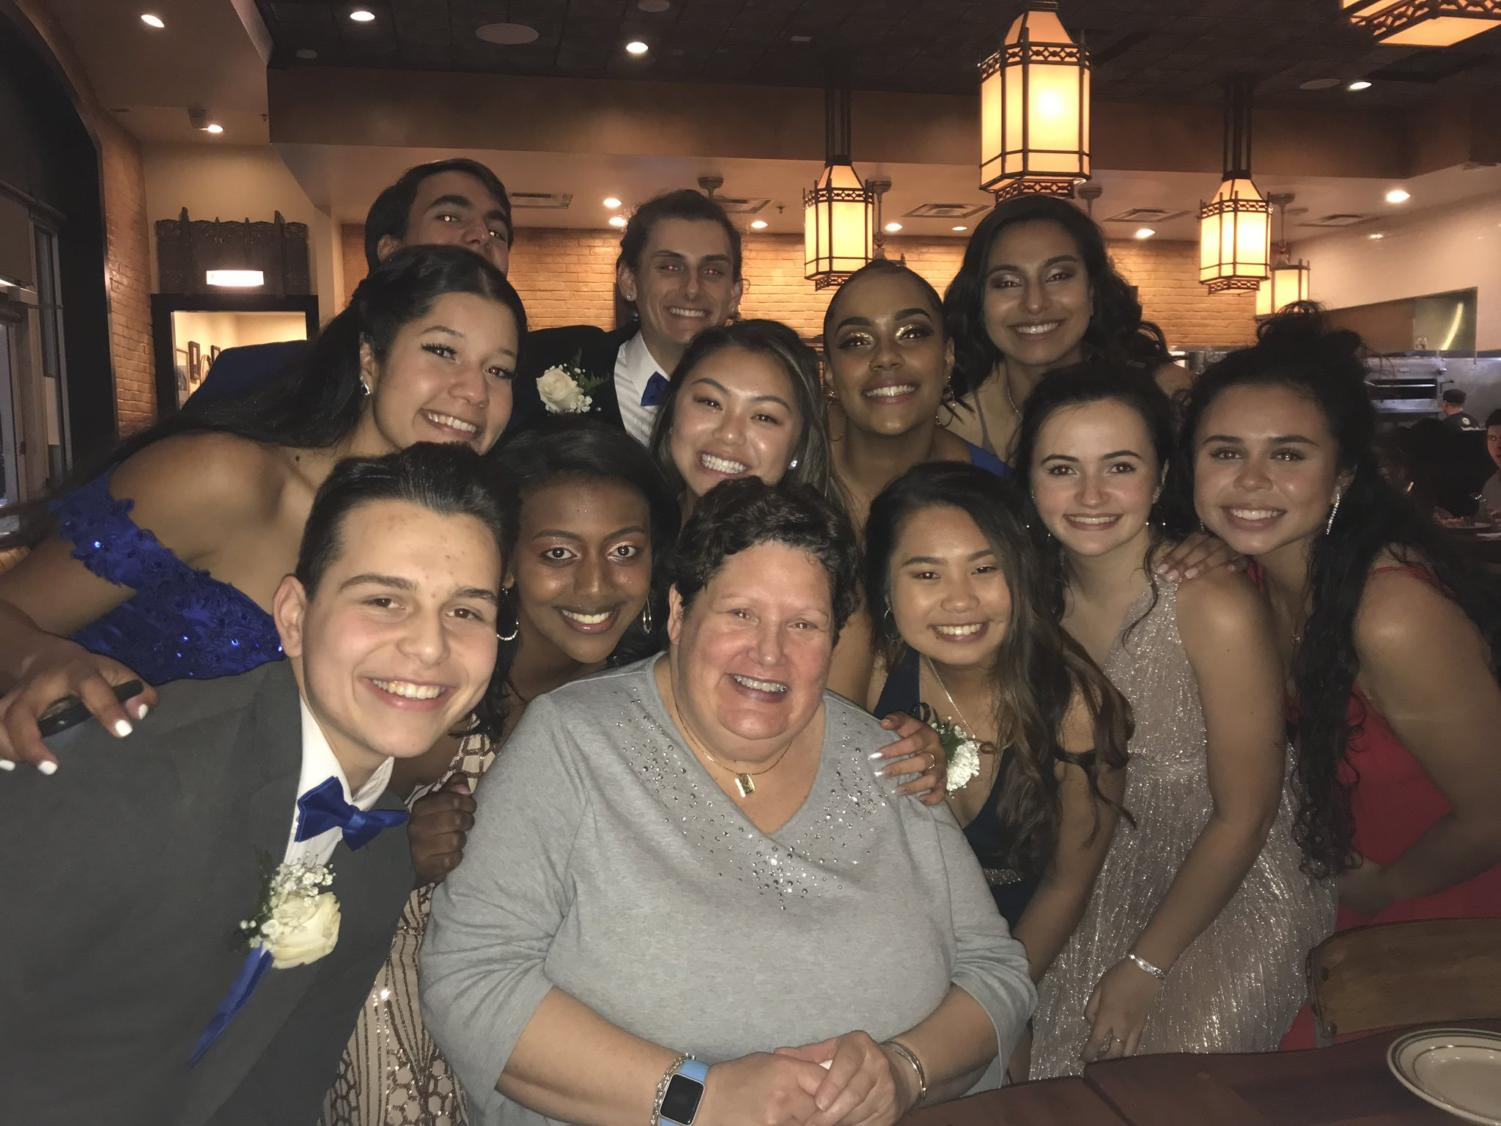 The mystery woman in the middle paid for the prom dinner for all 11 CHS students around her.